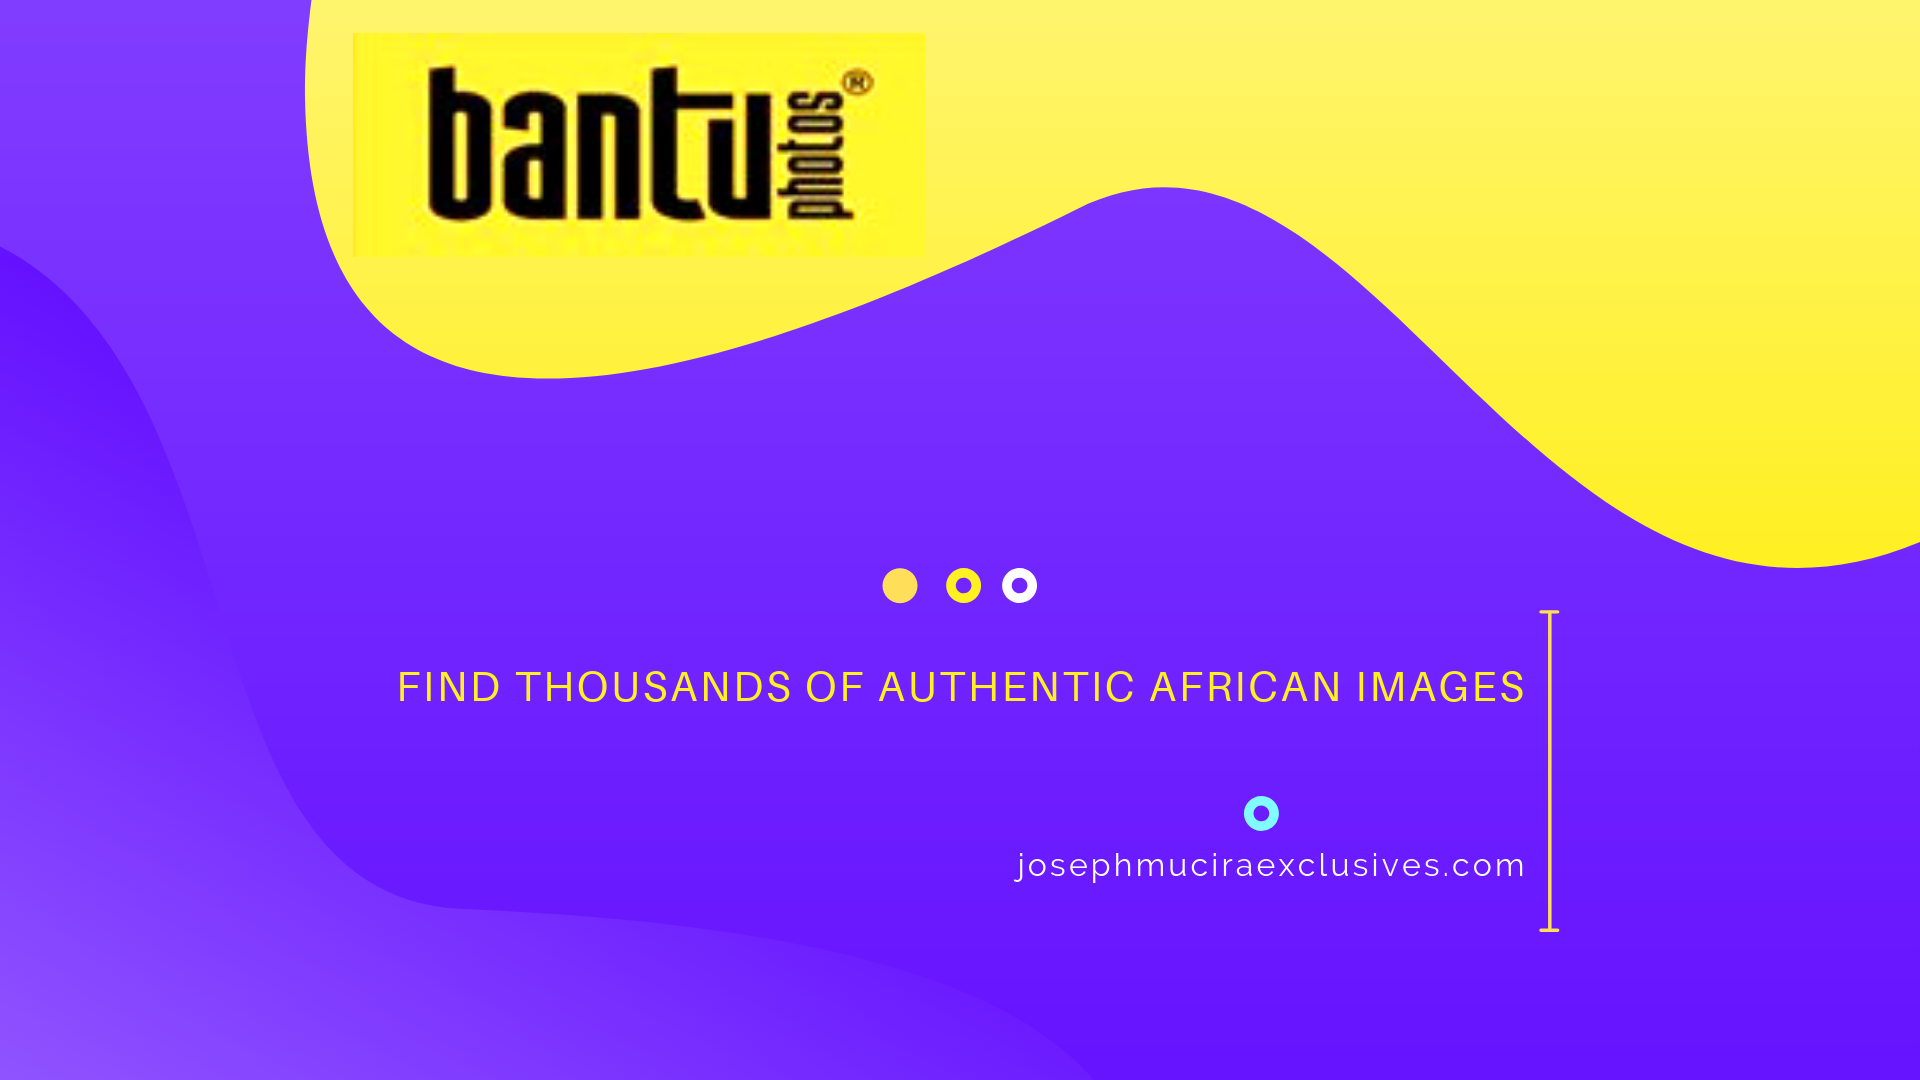 David Molnar & Bantu Photos Marketplace